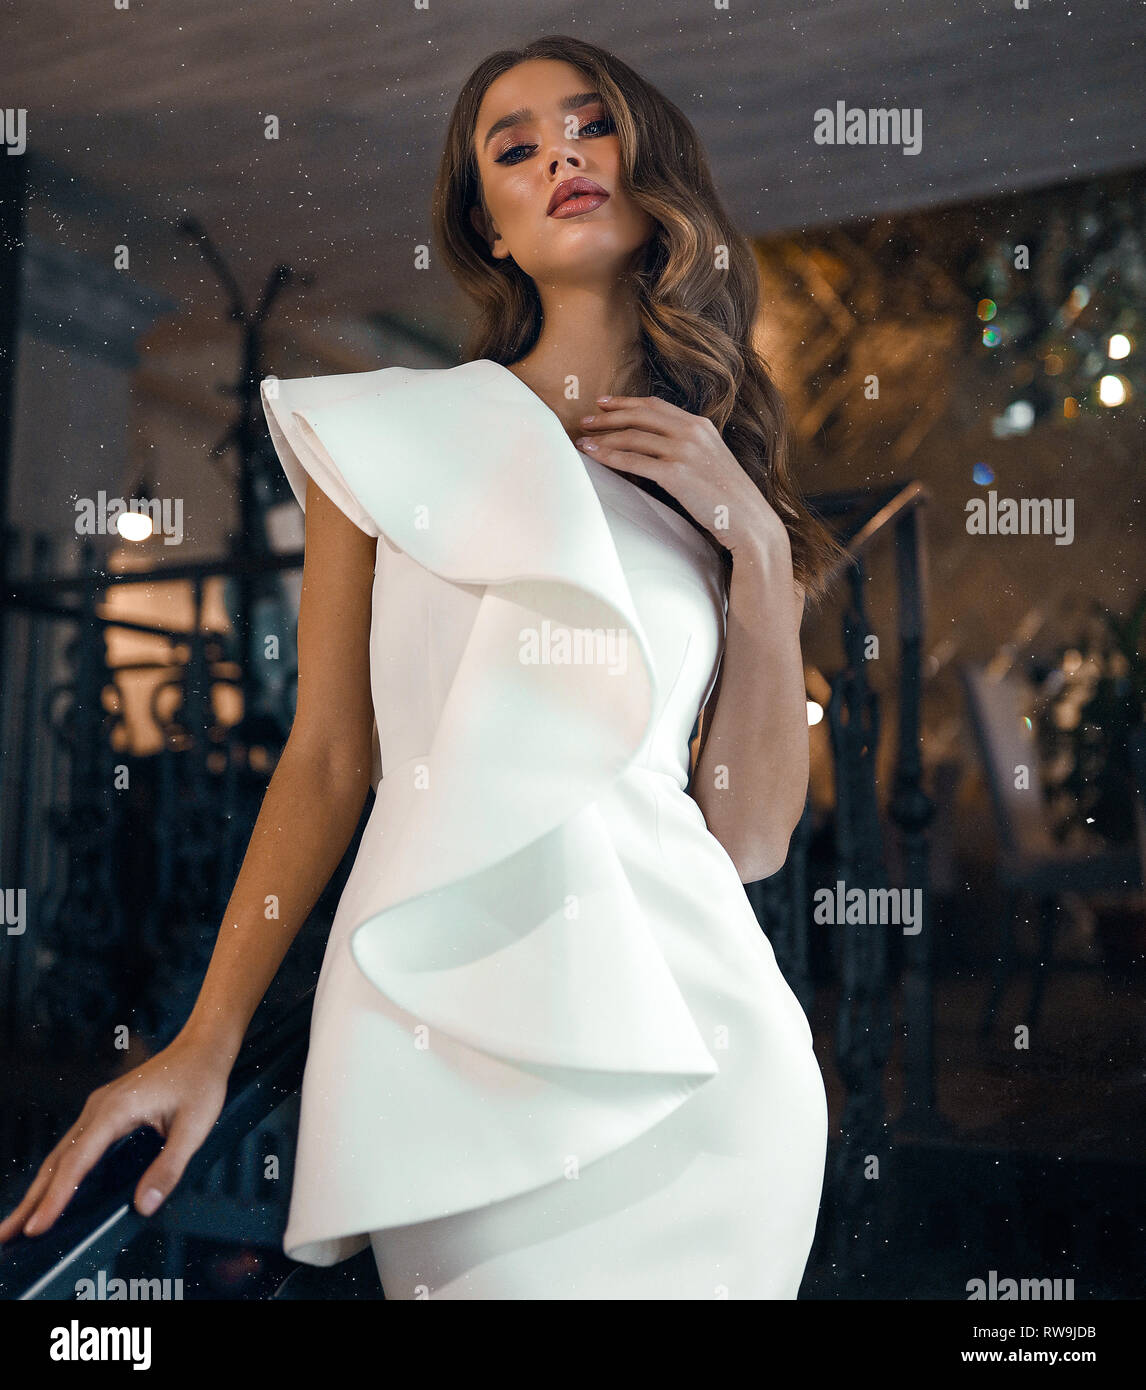 Pretty young model with curly hairstyle and makeup wearing the white modern dress, open arms and shoulder. Posing for the fashion magazine, shooting Stock Photo